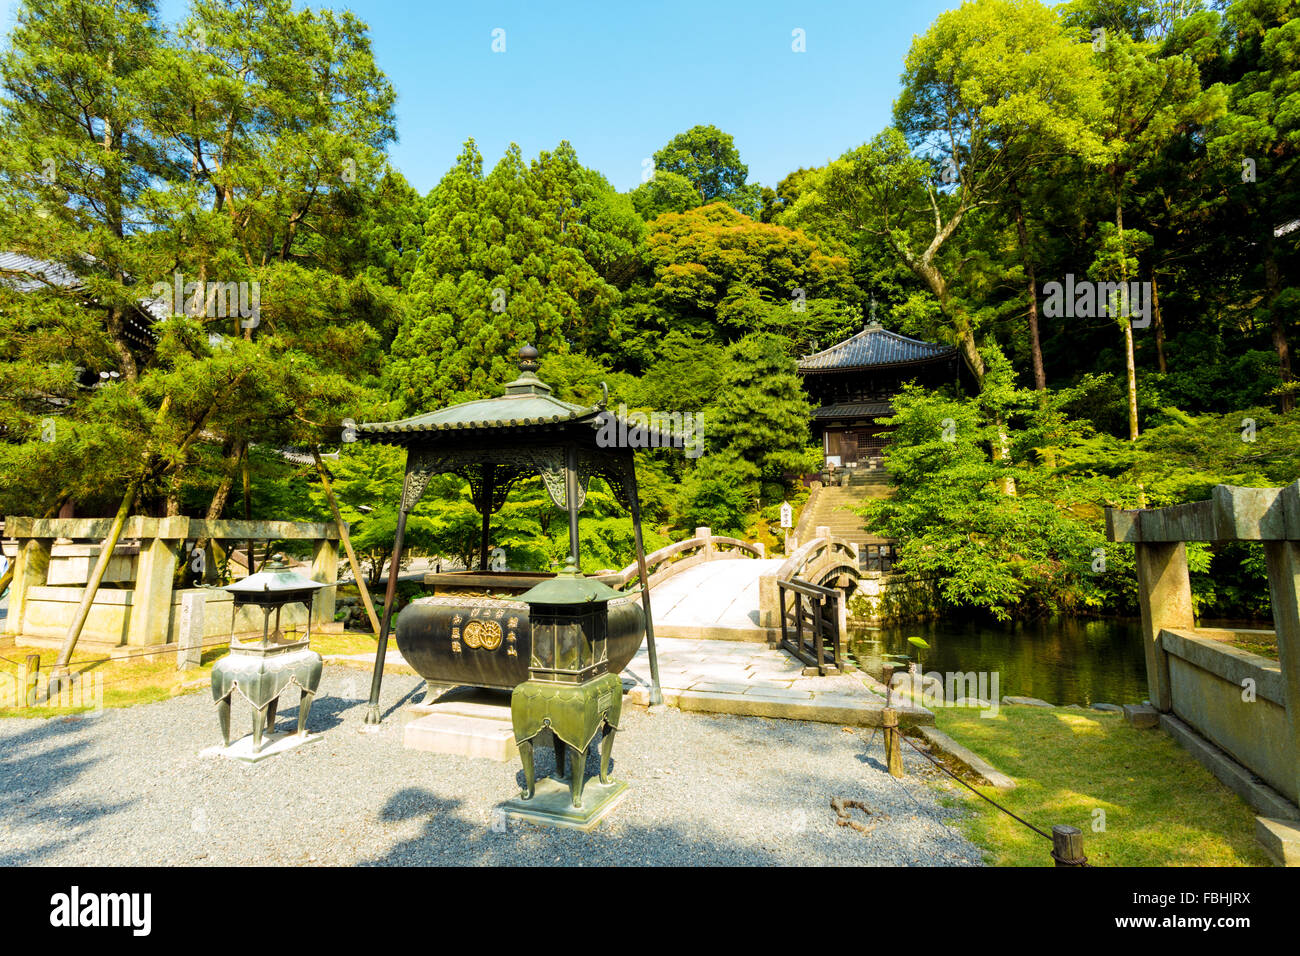 Japanese Garden Stone Bridge part of japanese garden, a gravel path and stone bridge over a